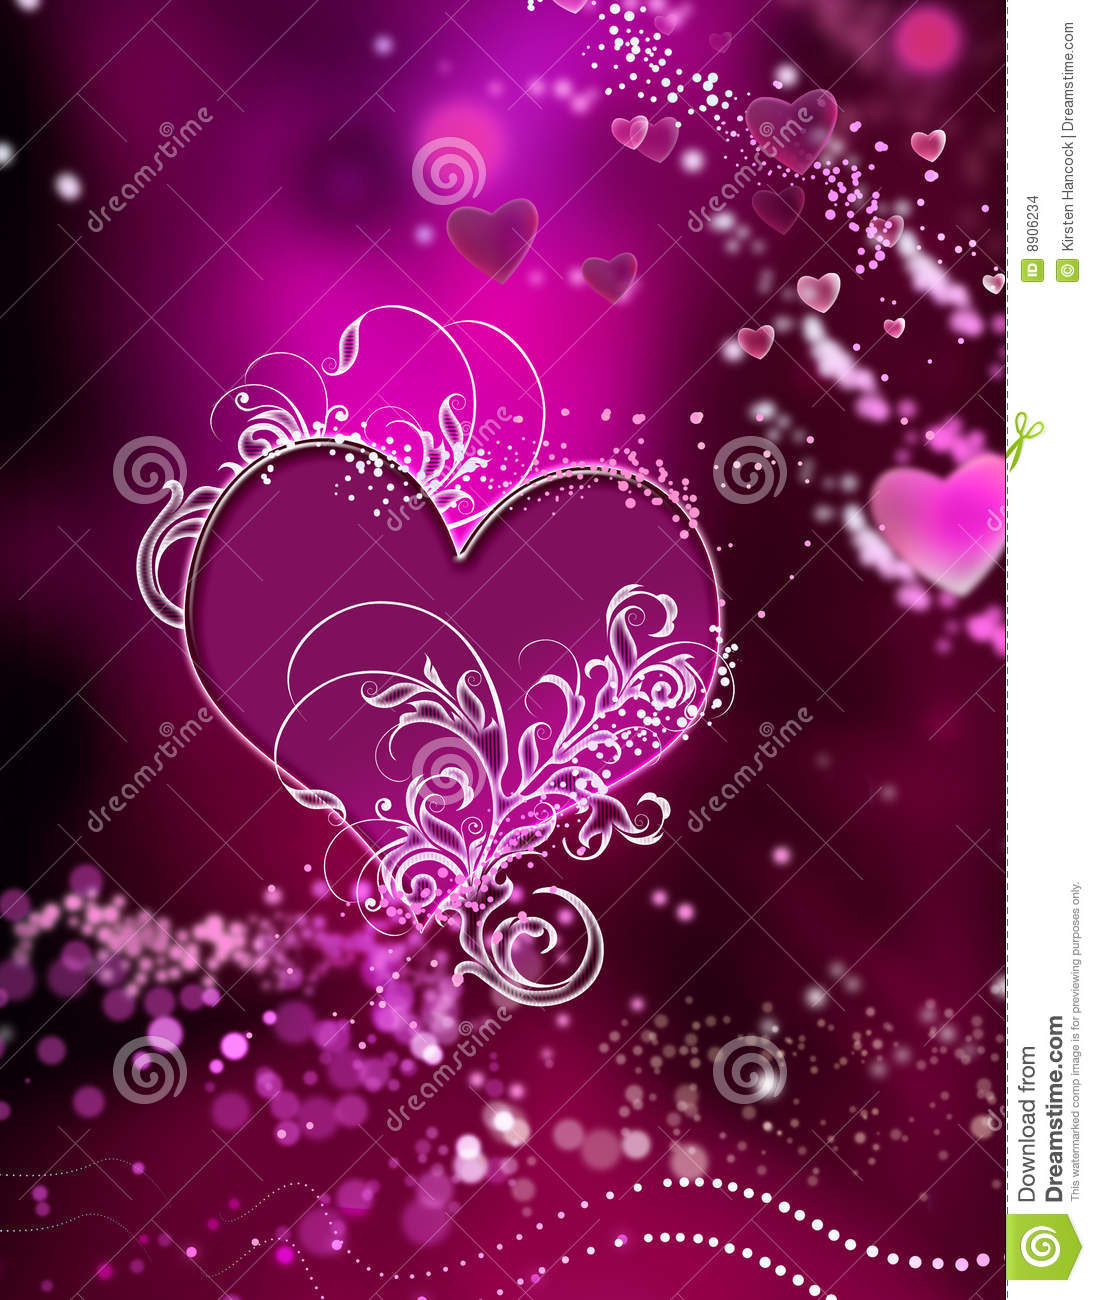 stunning hearts and sparkles swirl abstract stock images